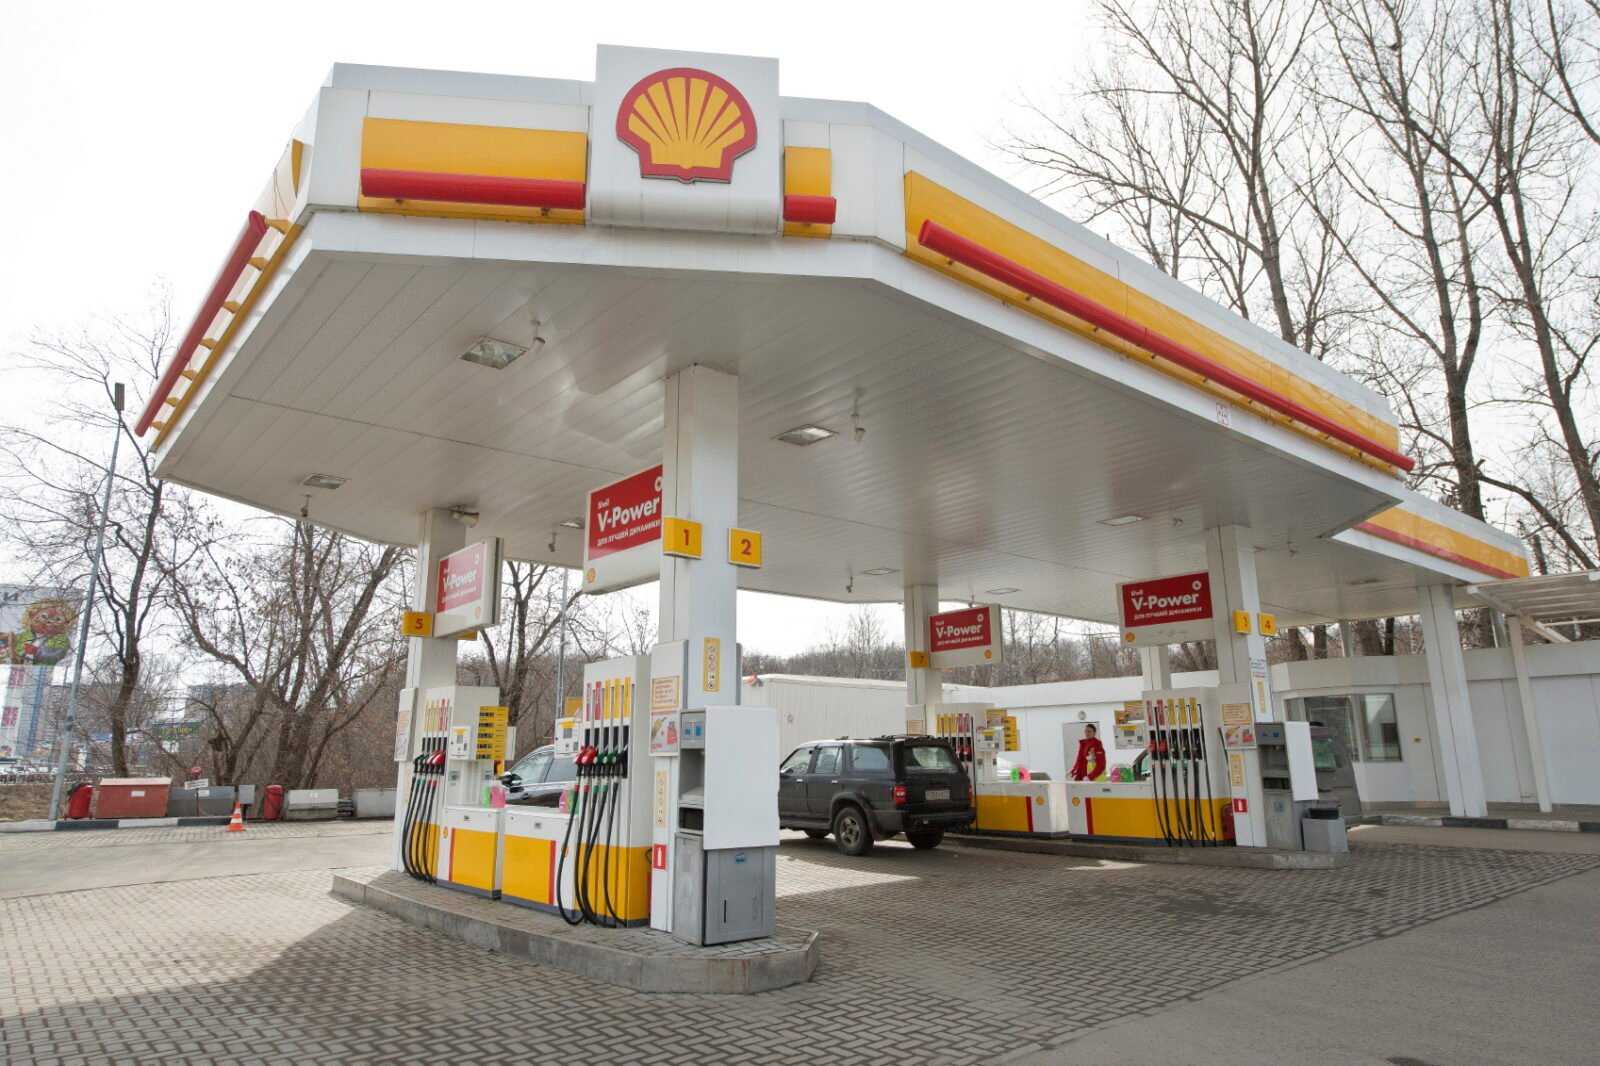 shell petrol station